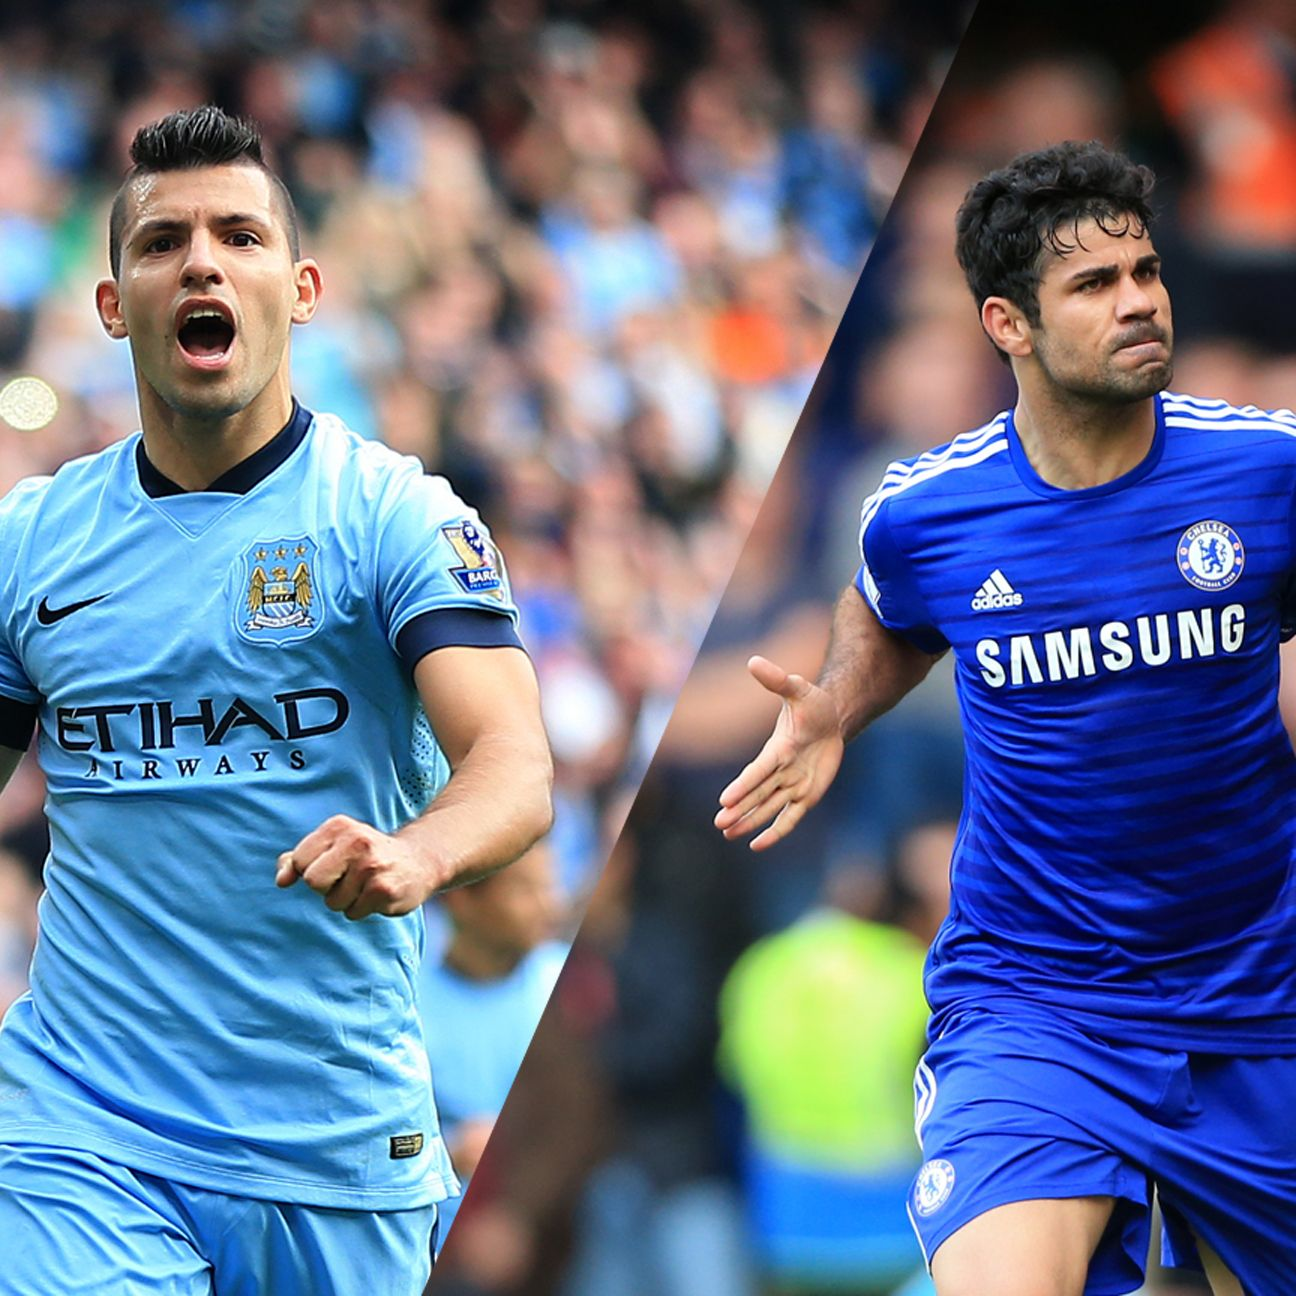 Manchester City's Sergio Aguero (14 goals) and Chelsea's Diego Costa (17 goals) are the top-two scorers in the Prem.